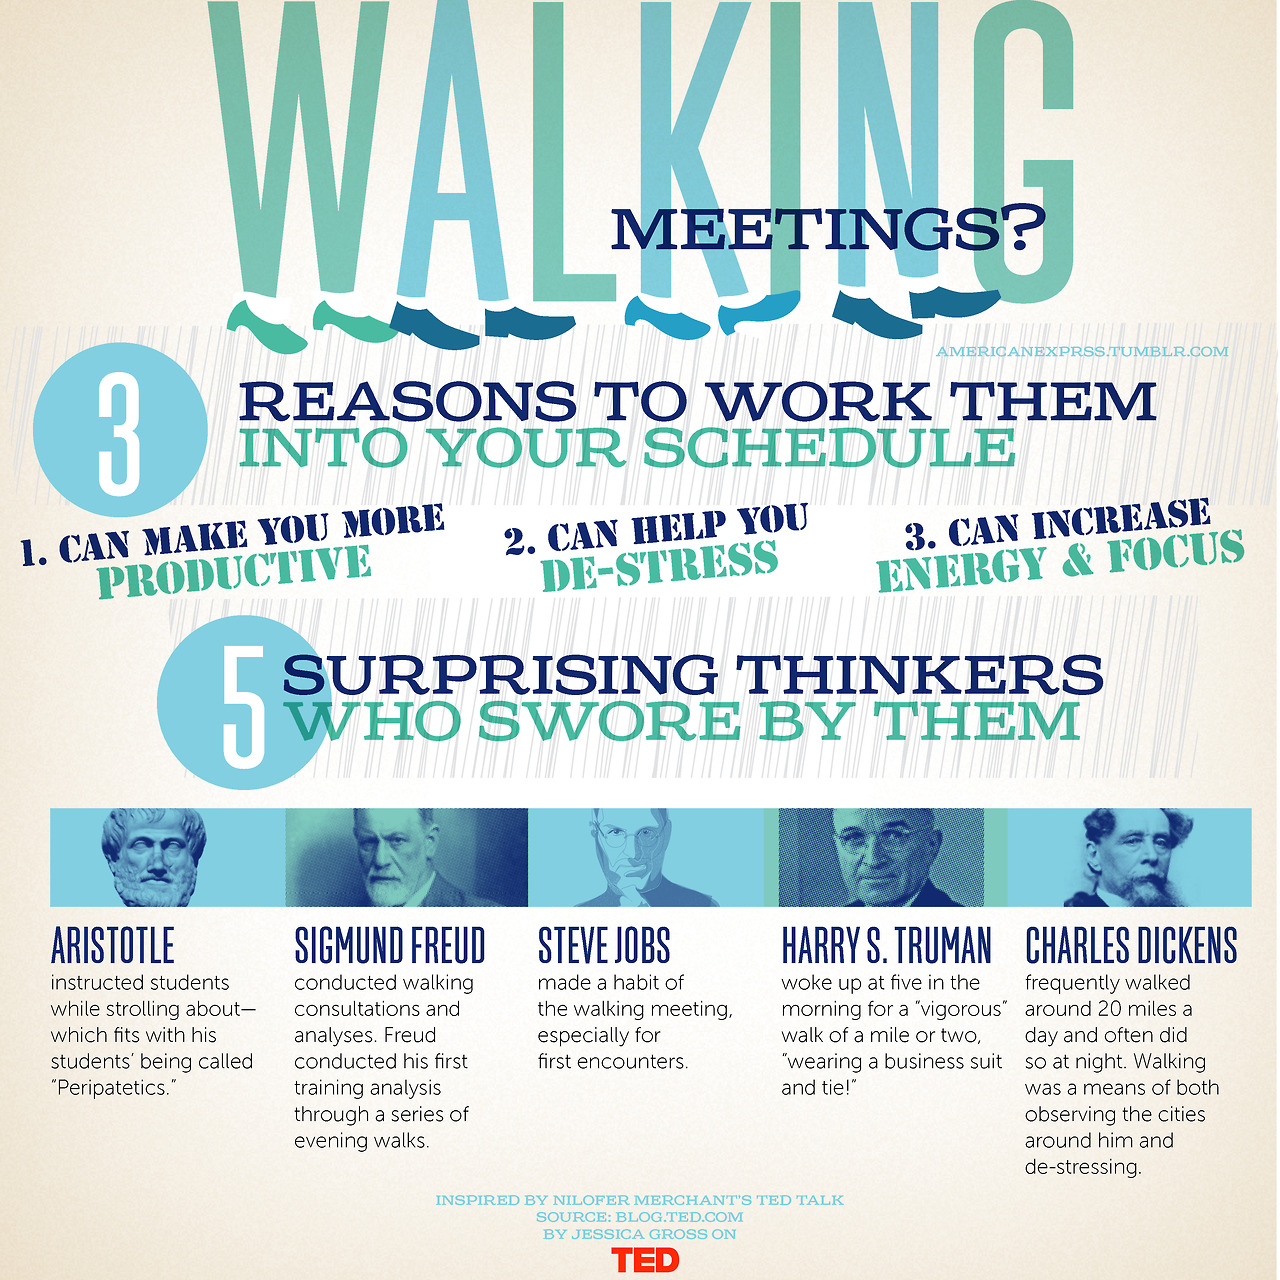 Walking meetings